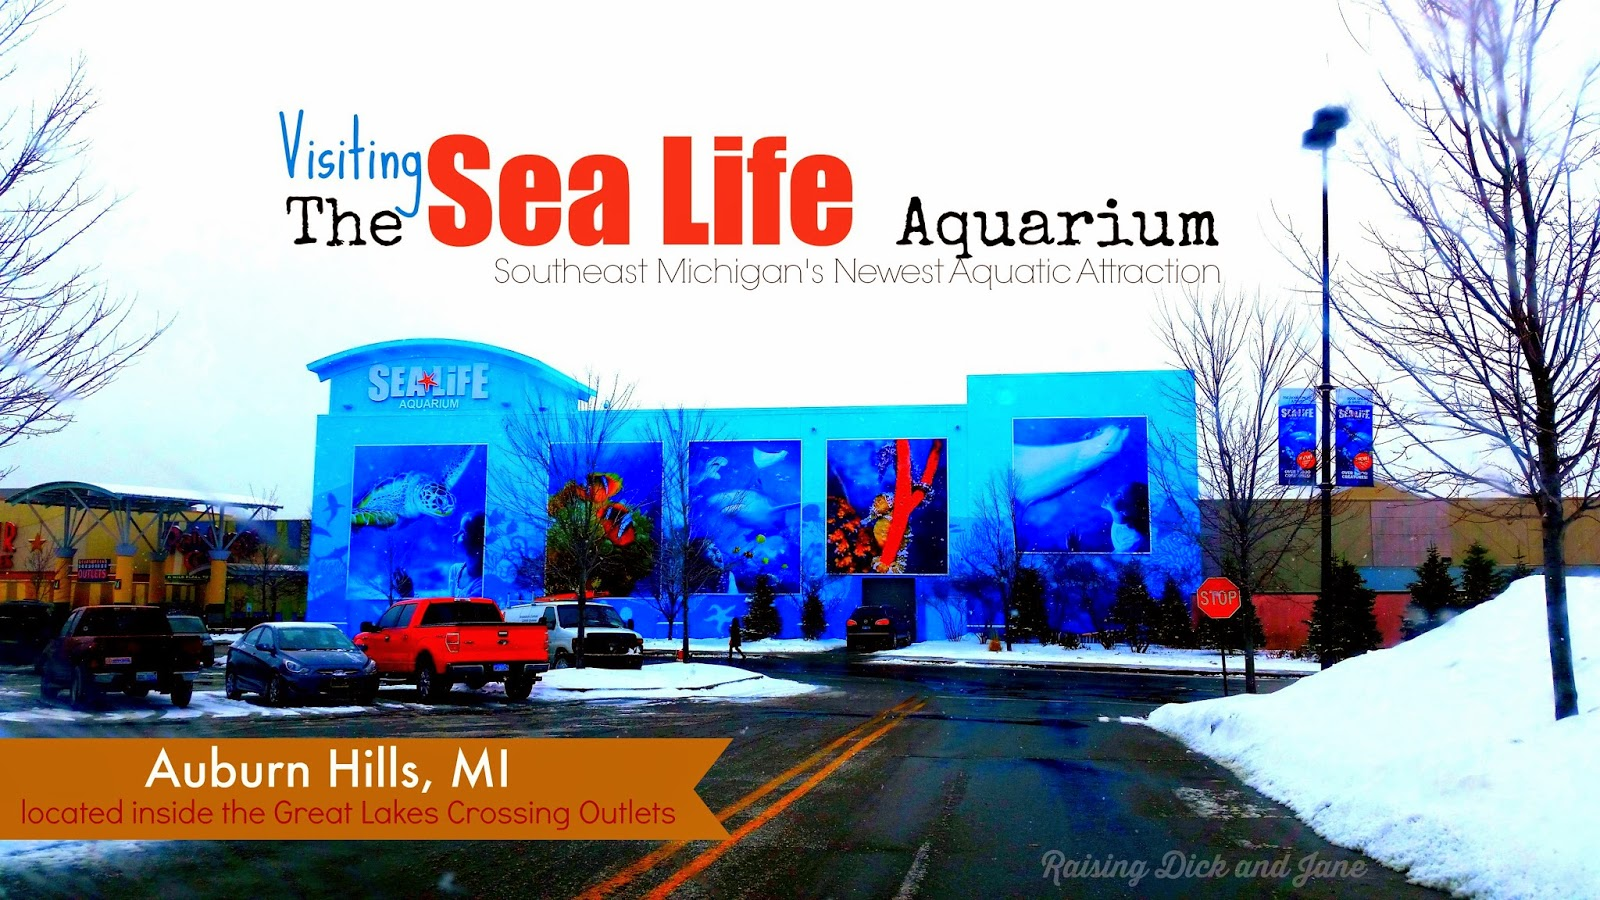 #ad #SeaLifeMI Visit Sea Life Michigan Aquarium Michigan Travel